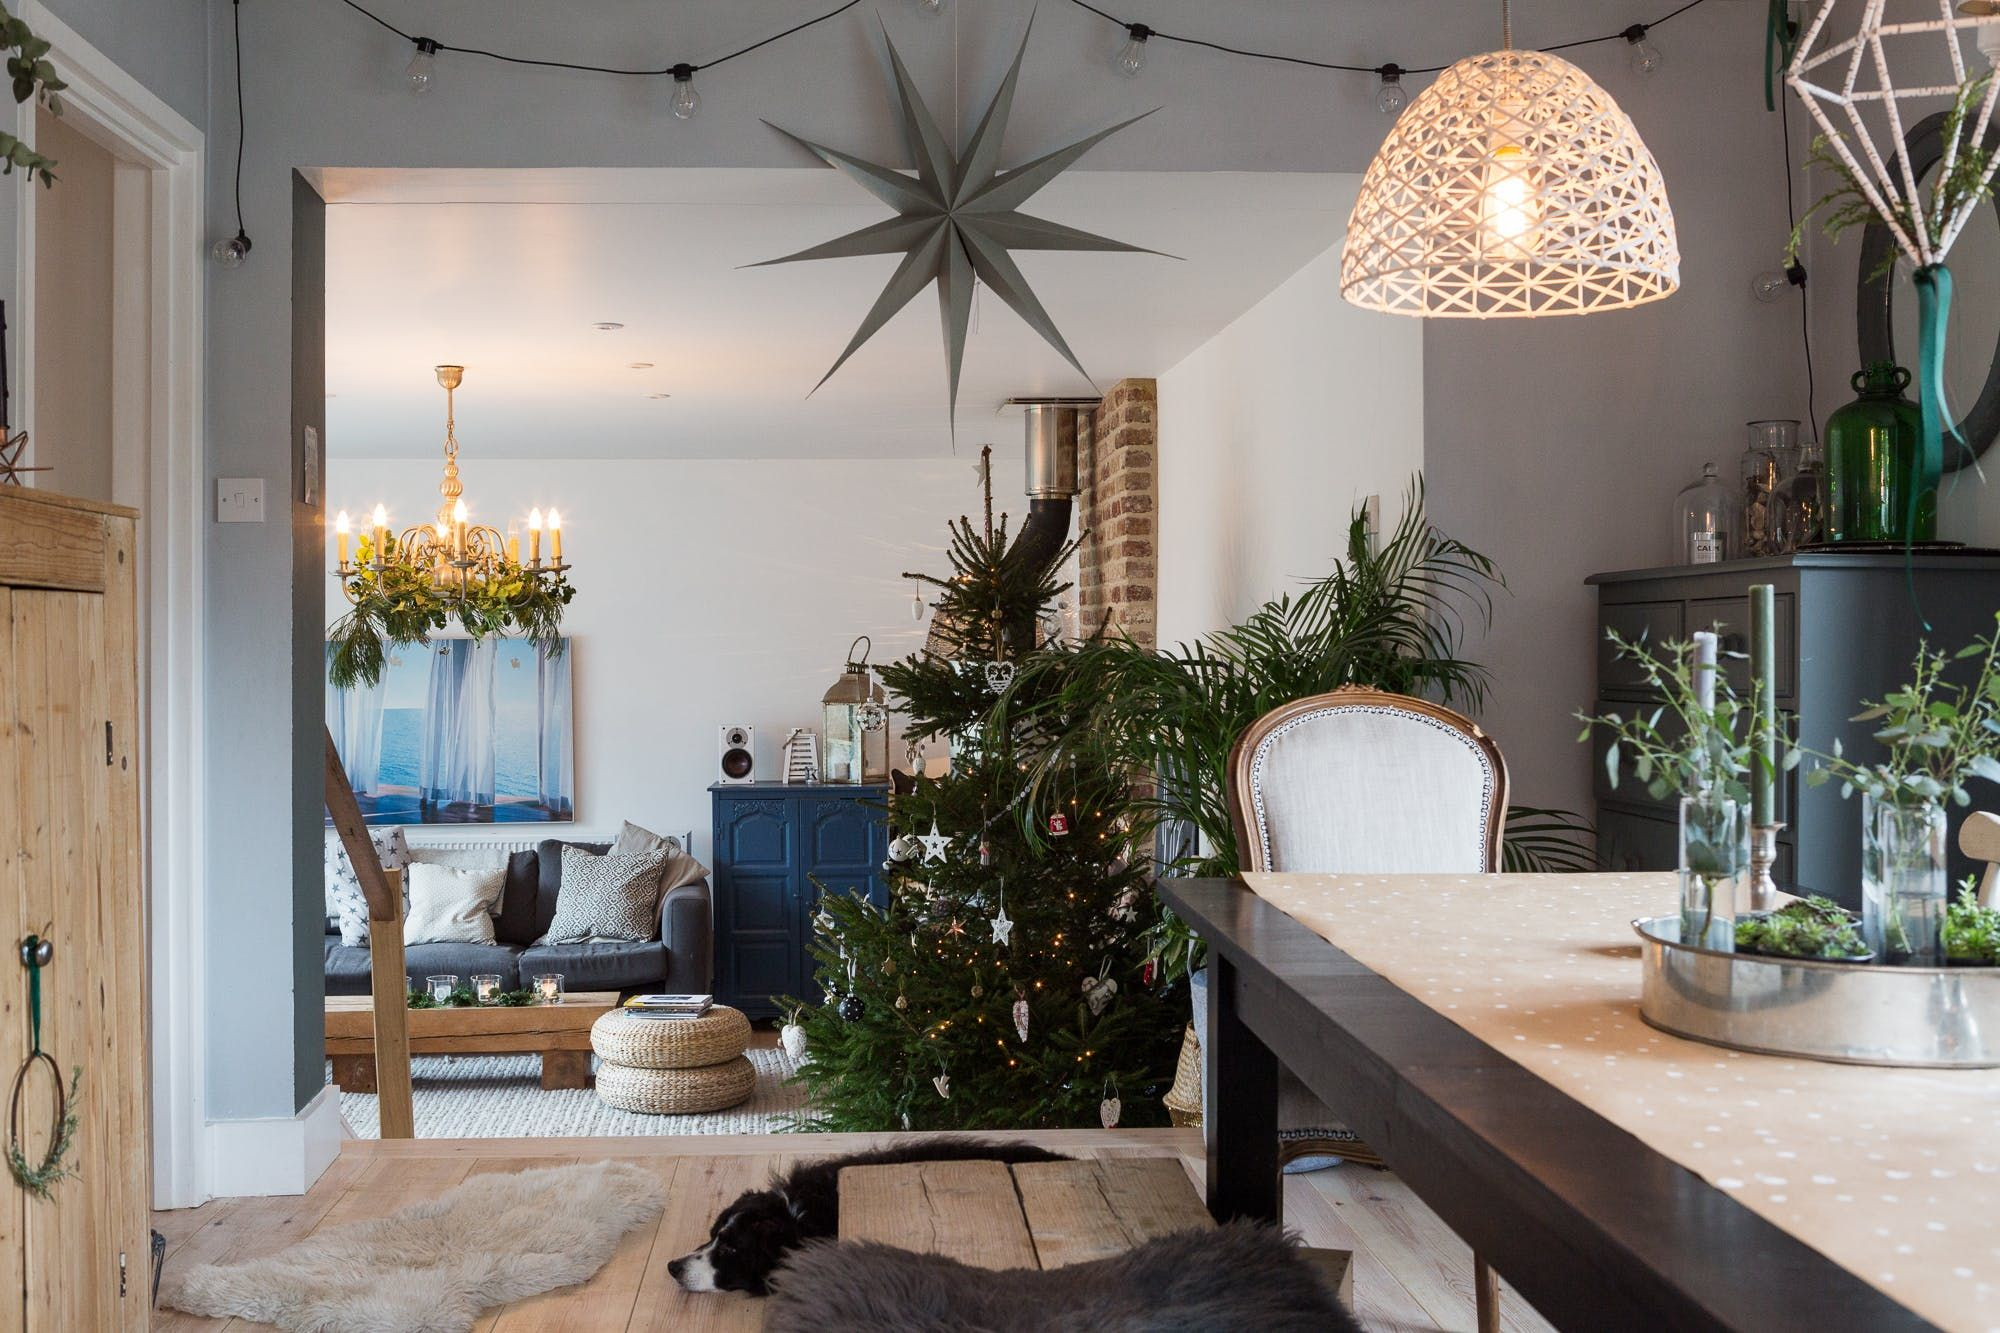 This Rustic English Home Has the Coziest Christmas Decor